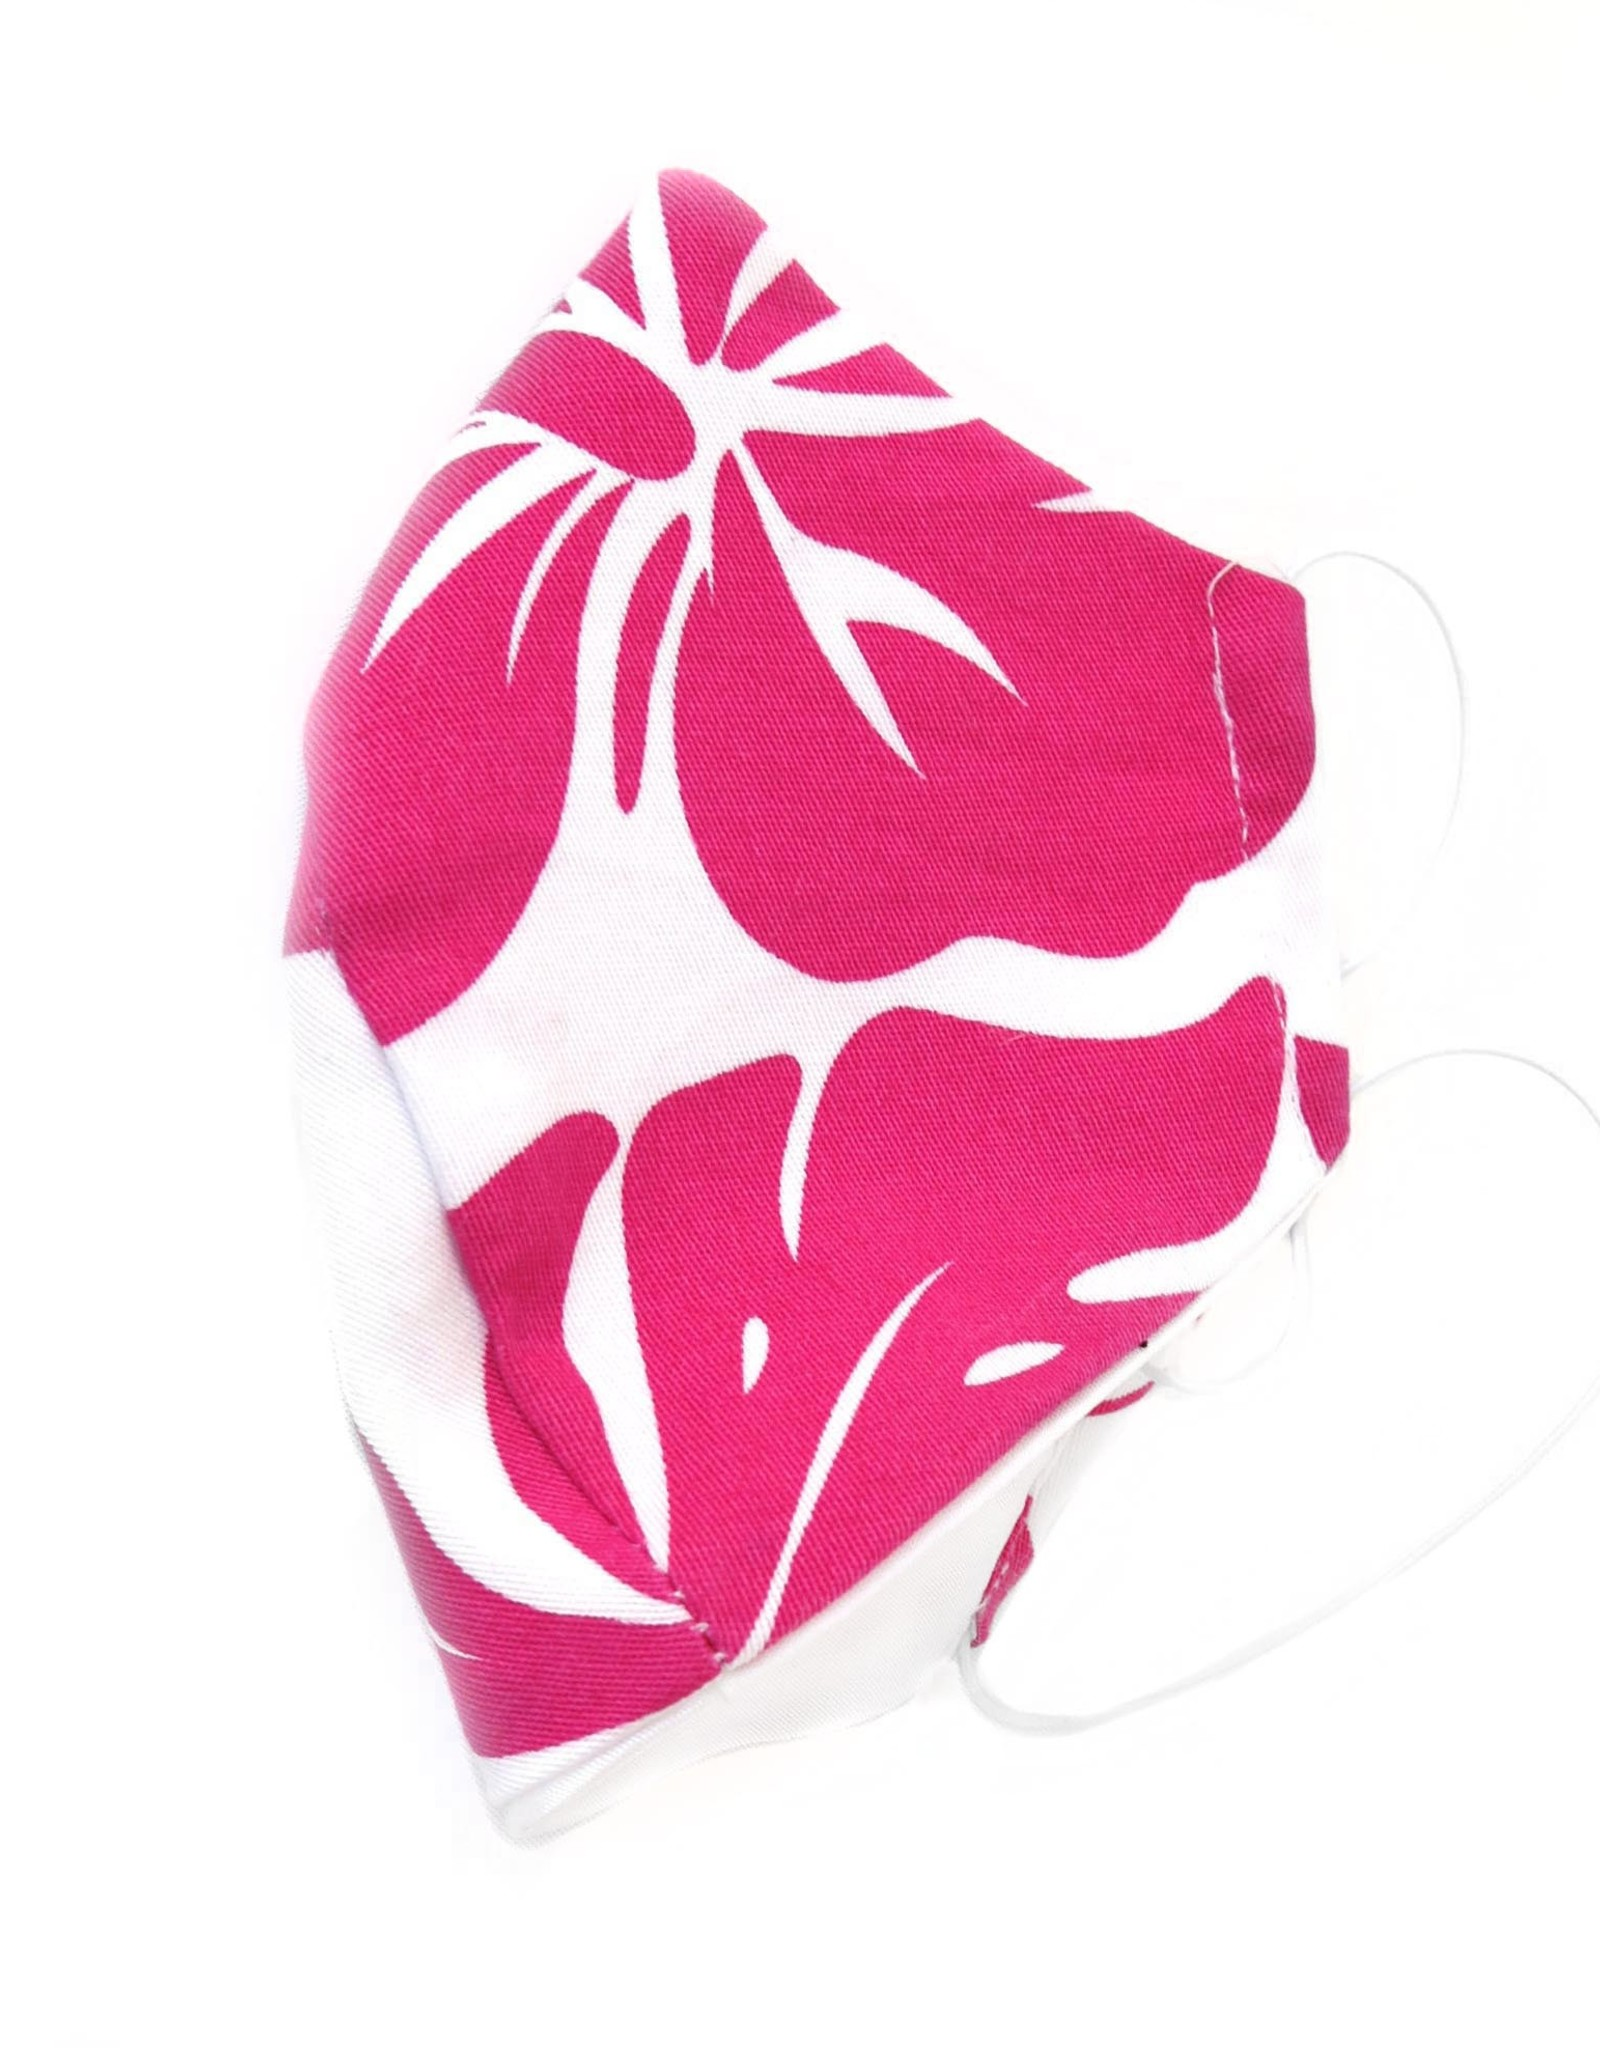 Juicey Gems Pink and White Juicey Face Mask (adult) by Juicey Gems